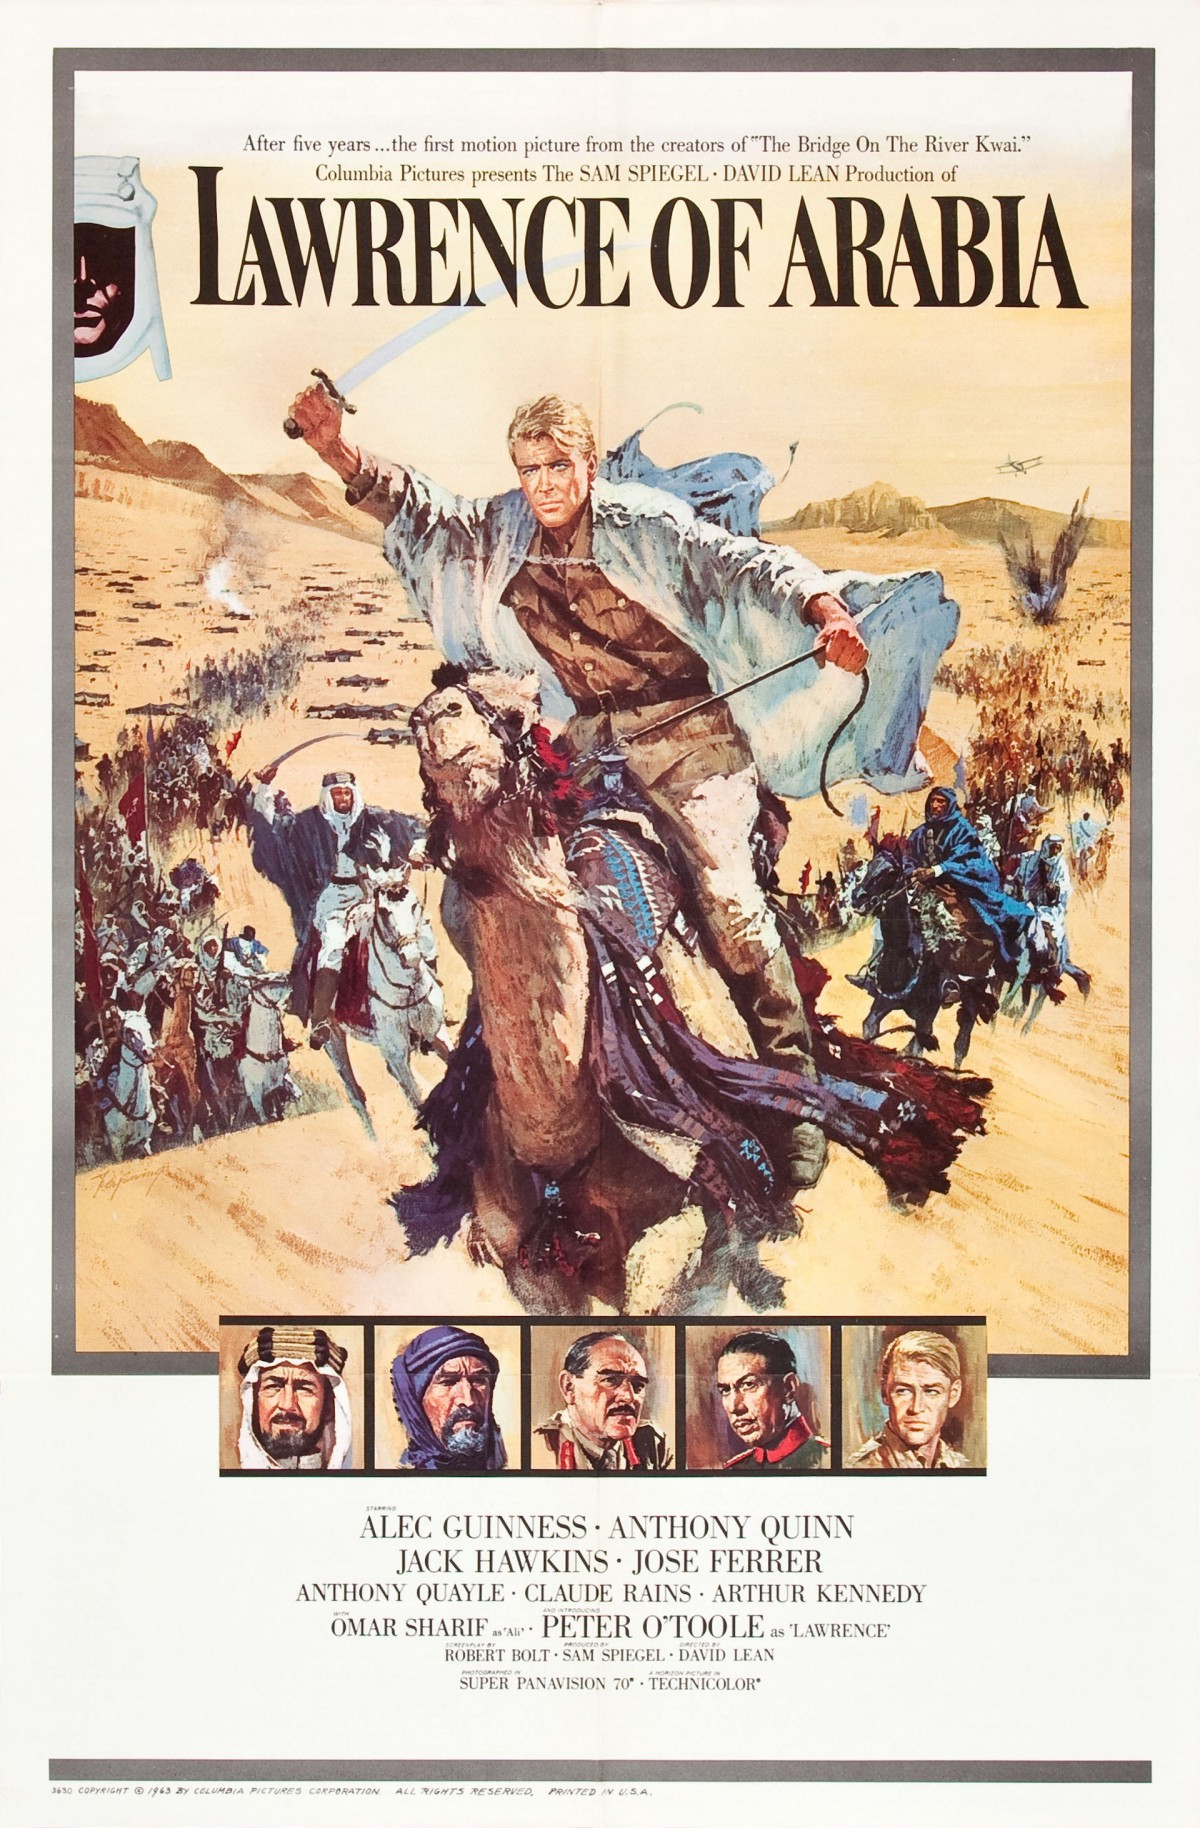 66. Lawrence of Arabia (1962)